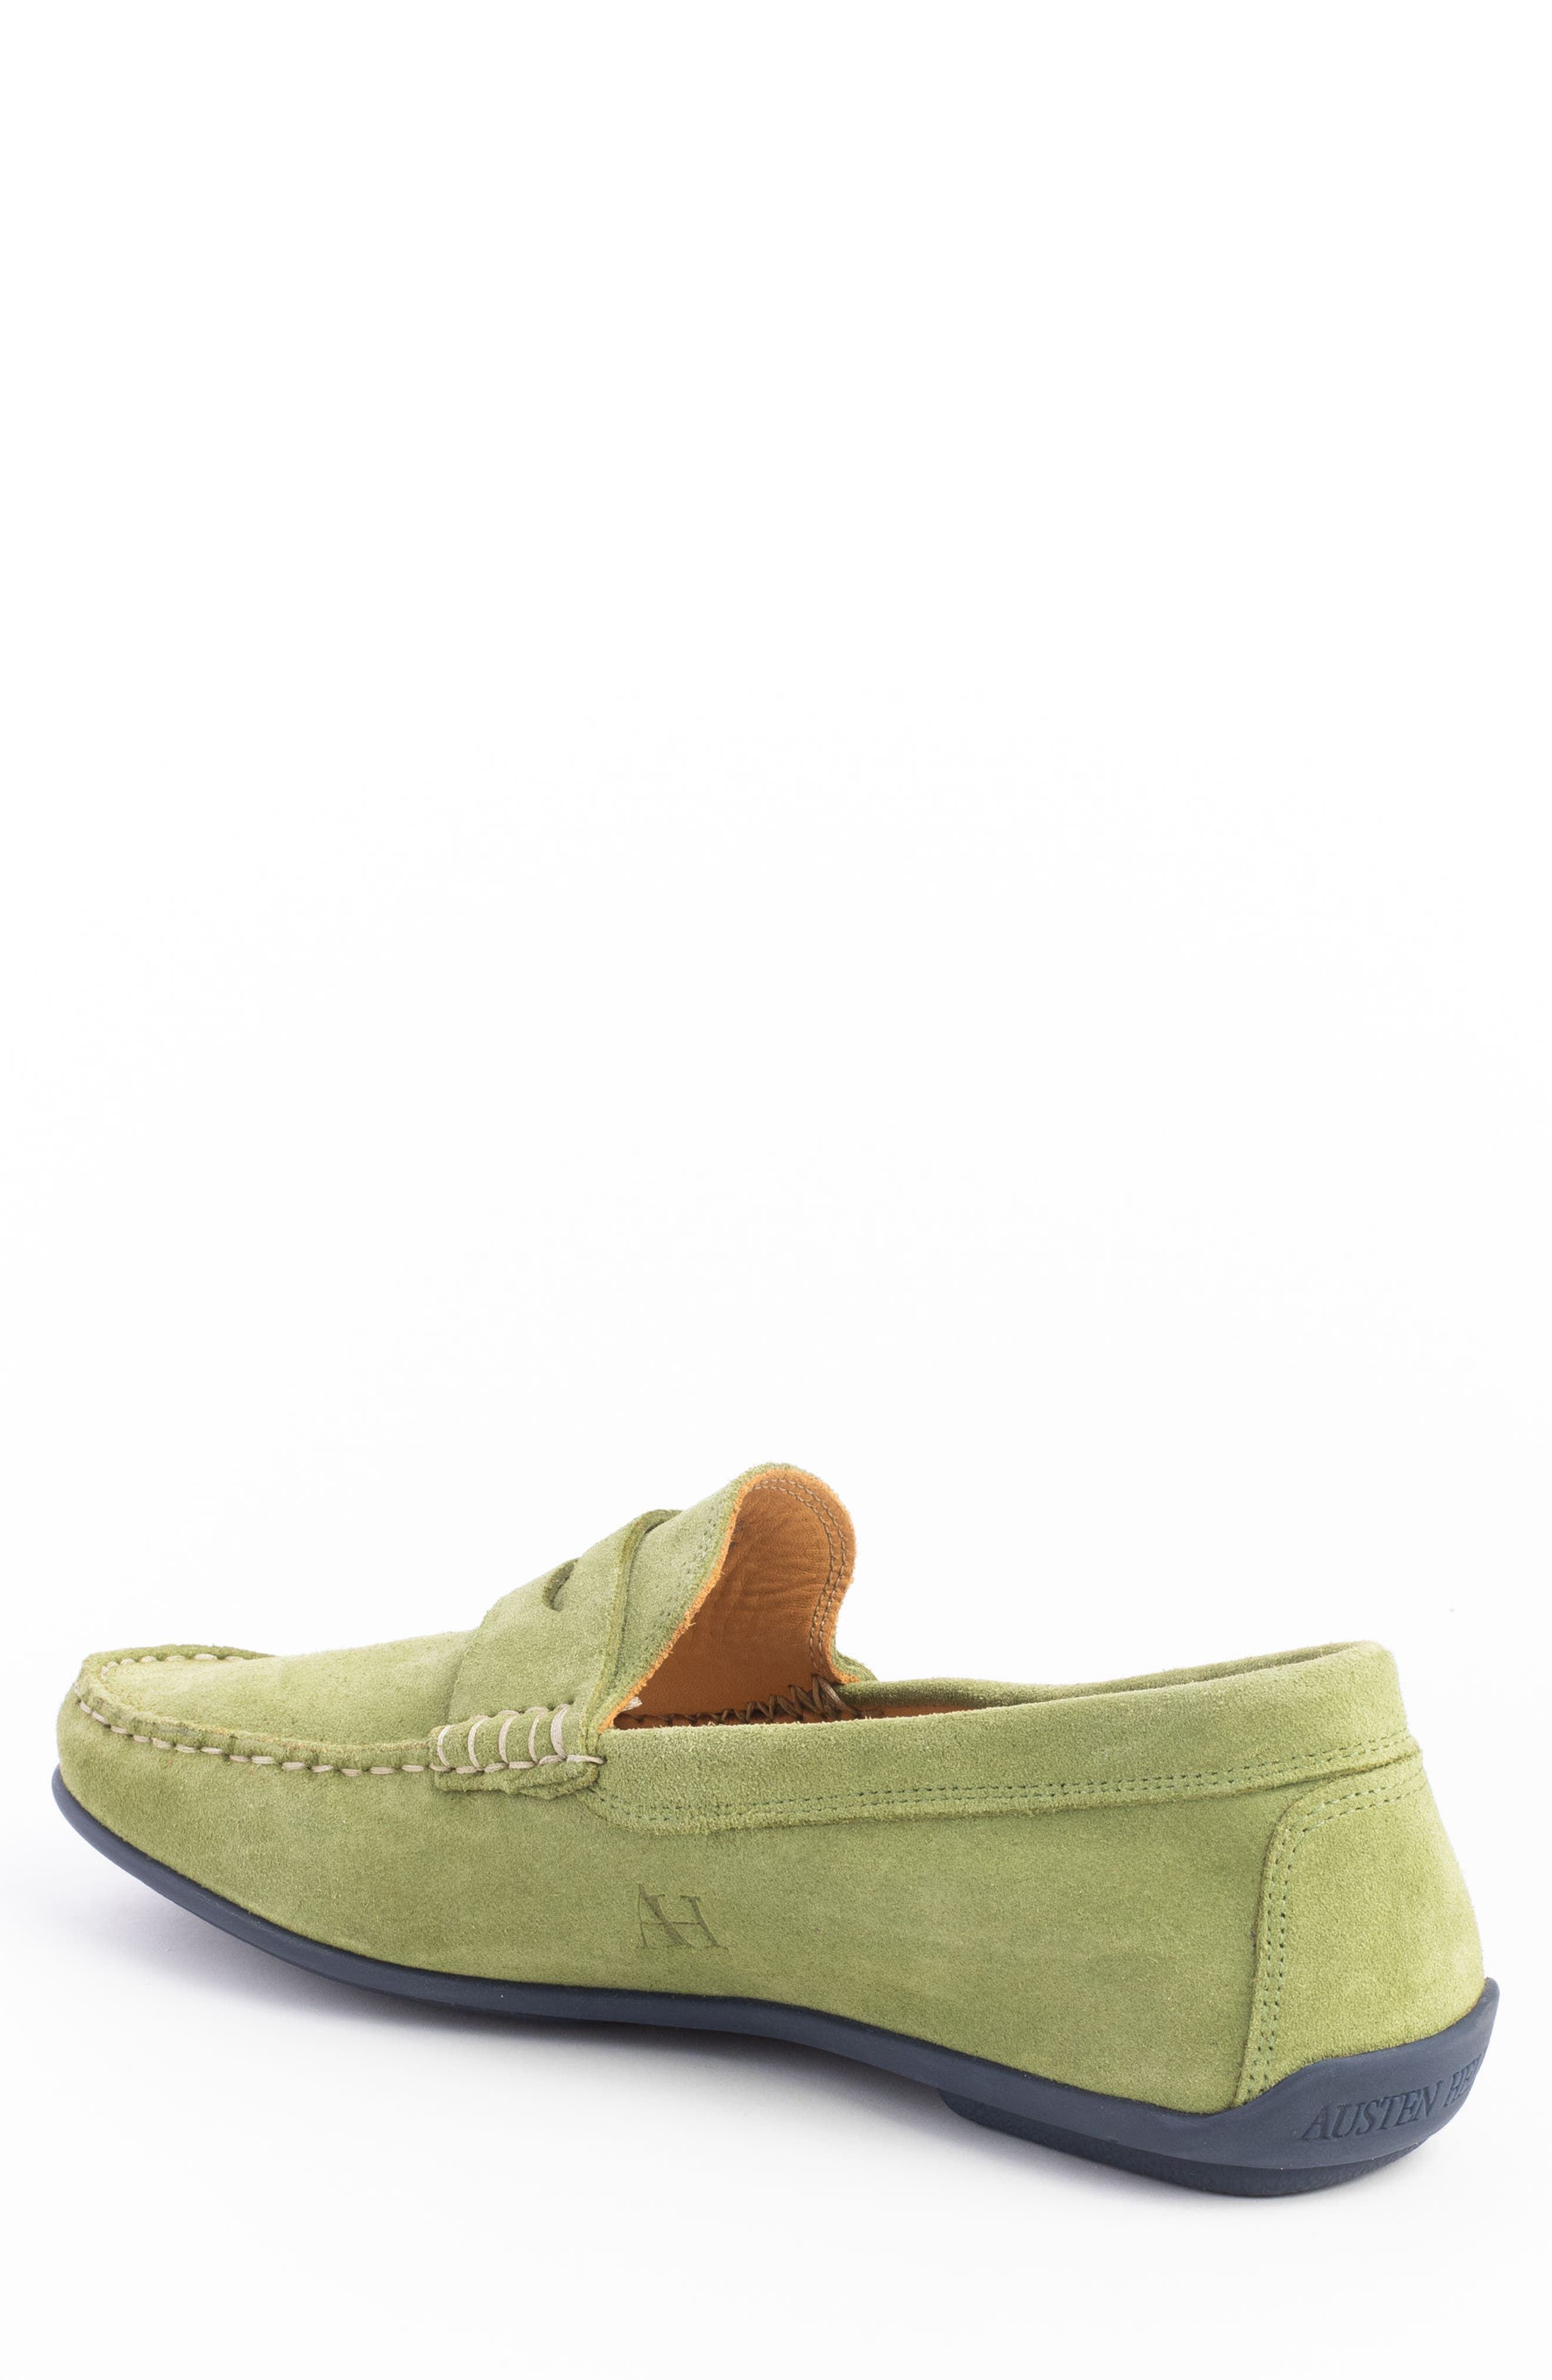 'Parkers' Penny Loafer,                             Alternate thumbnail 2, color,                             SPRING GREEN